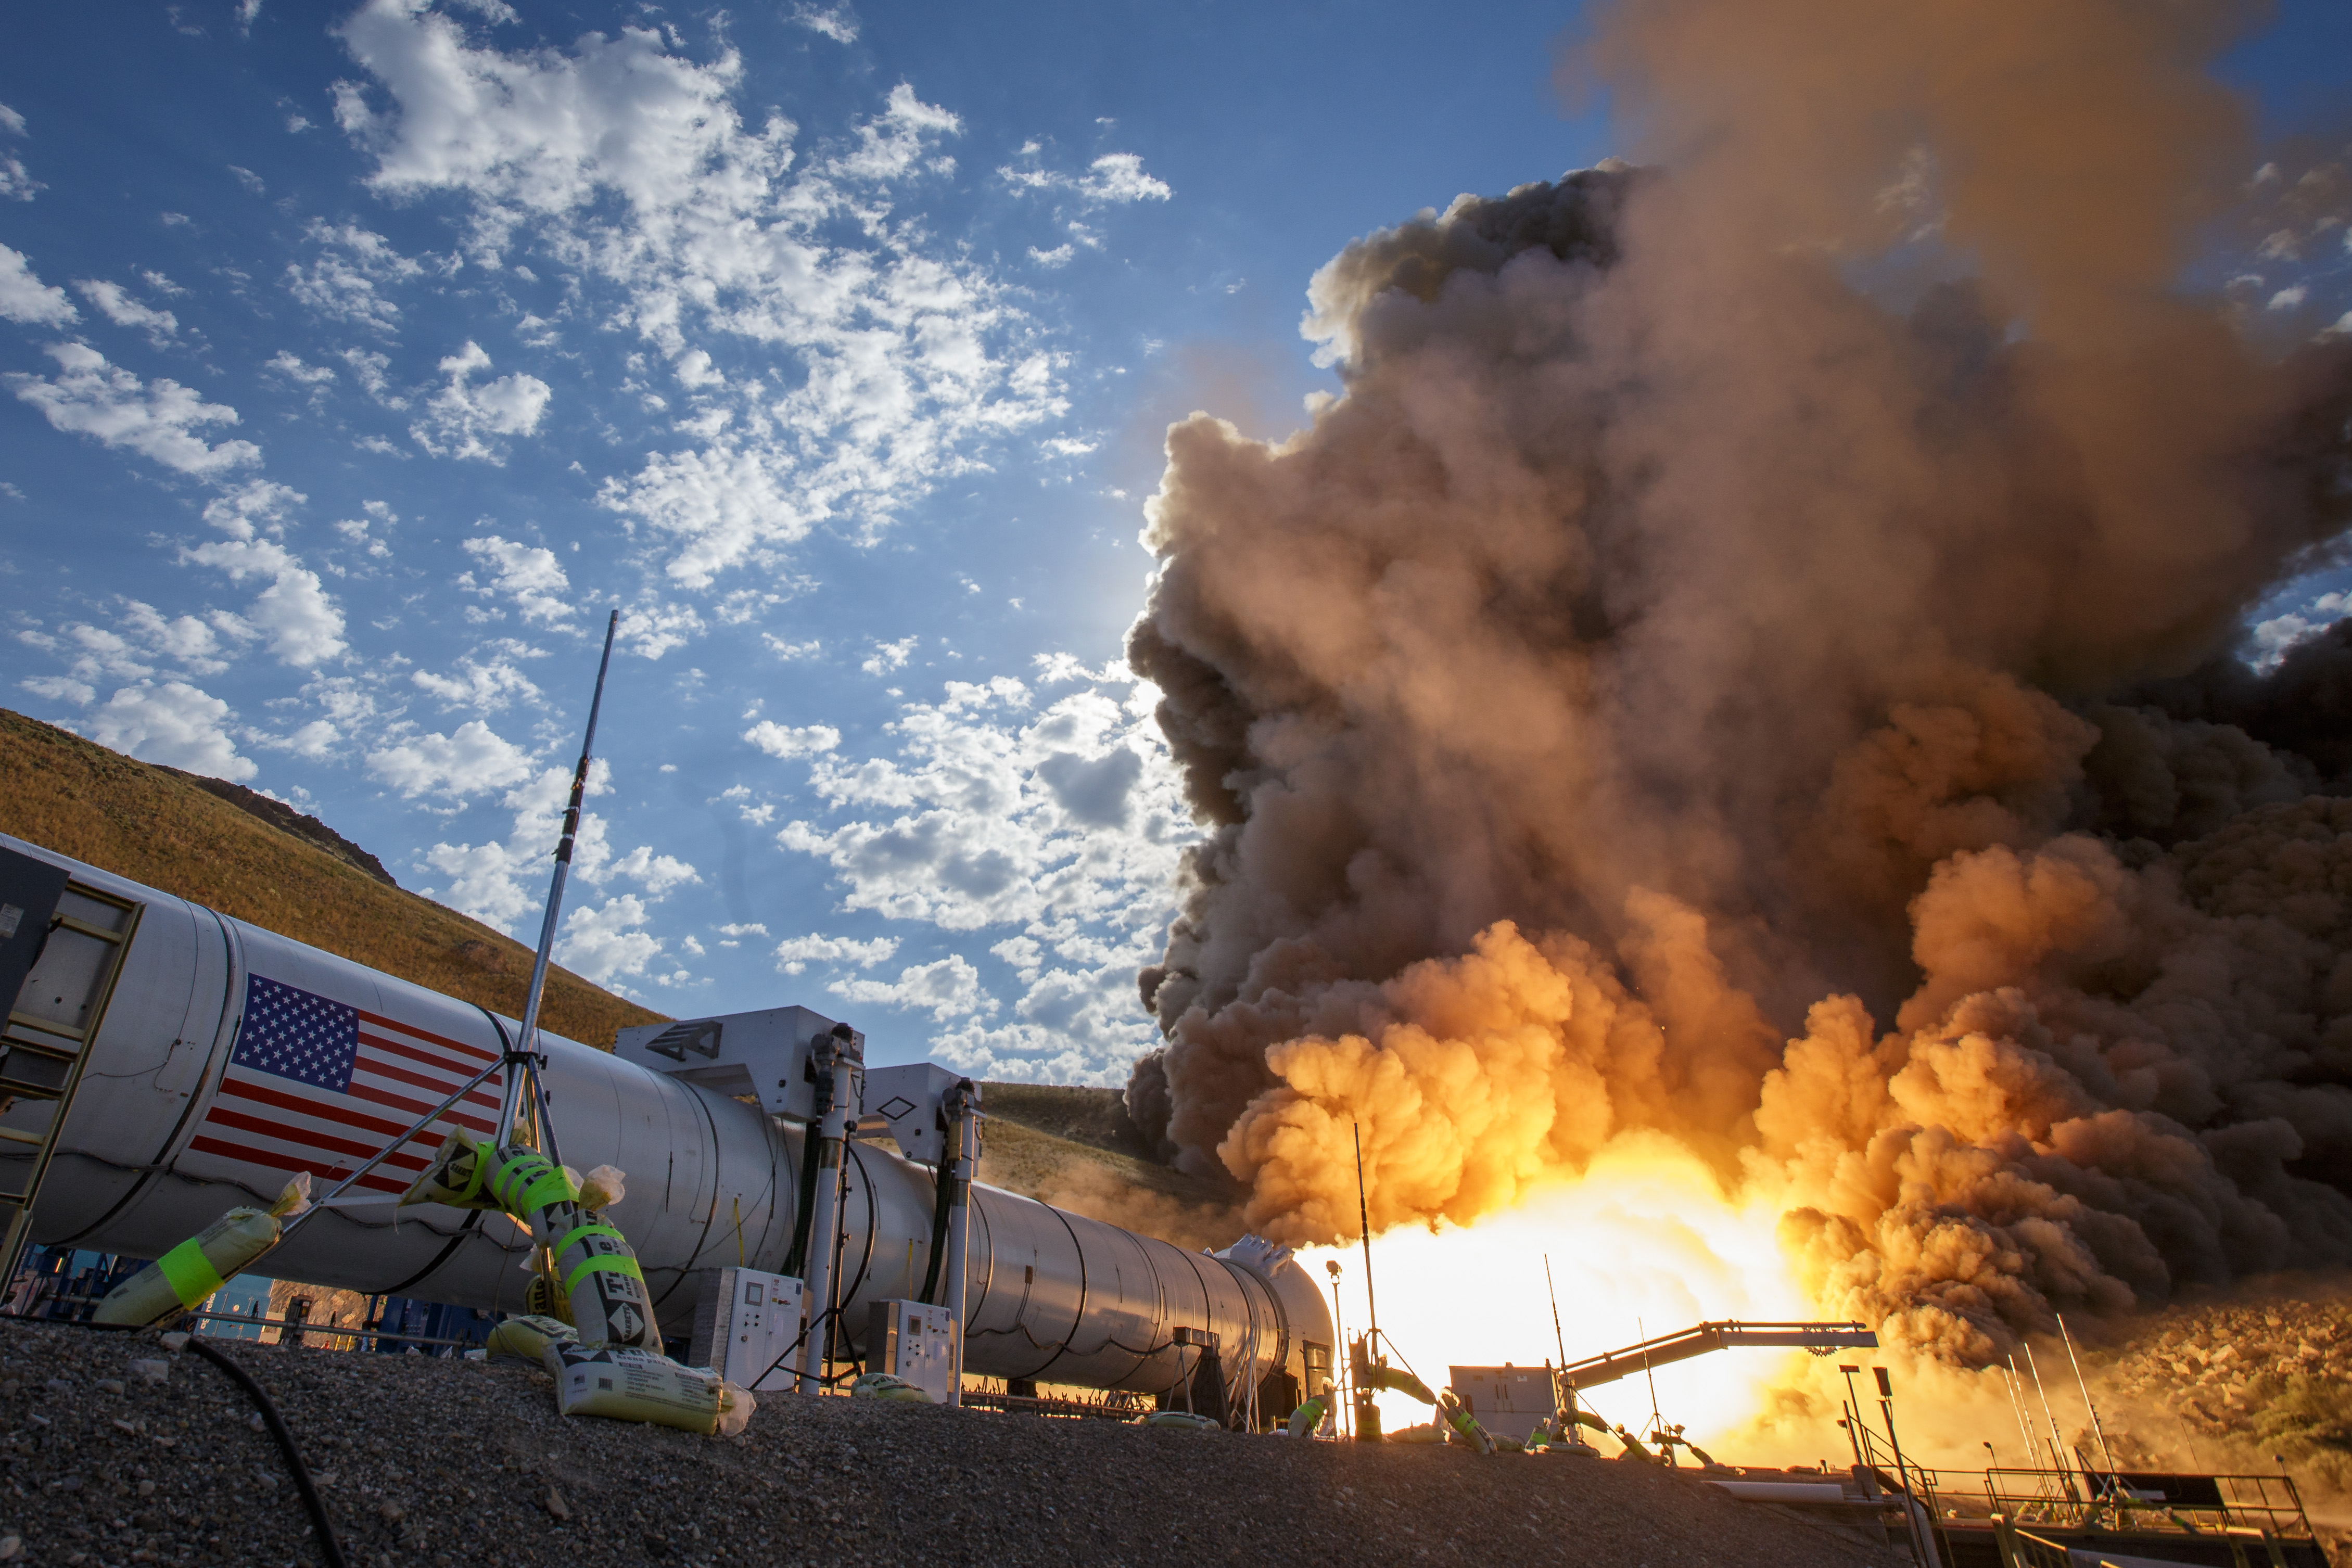 Video: NASA's successful rocket booster test gets us one step closer to Mars (Tomorrow Daily 385)